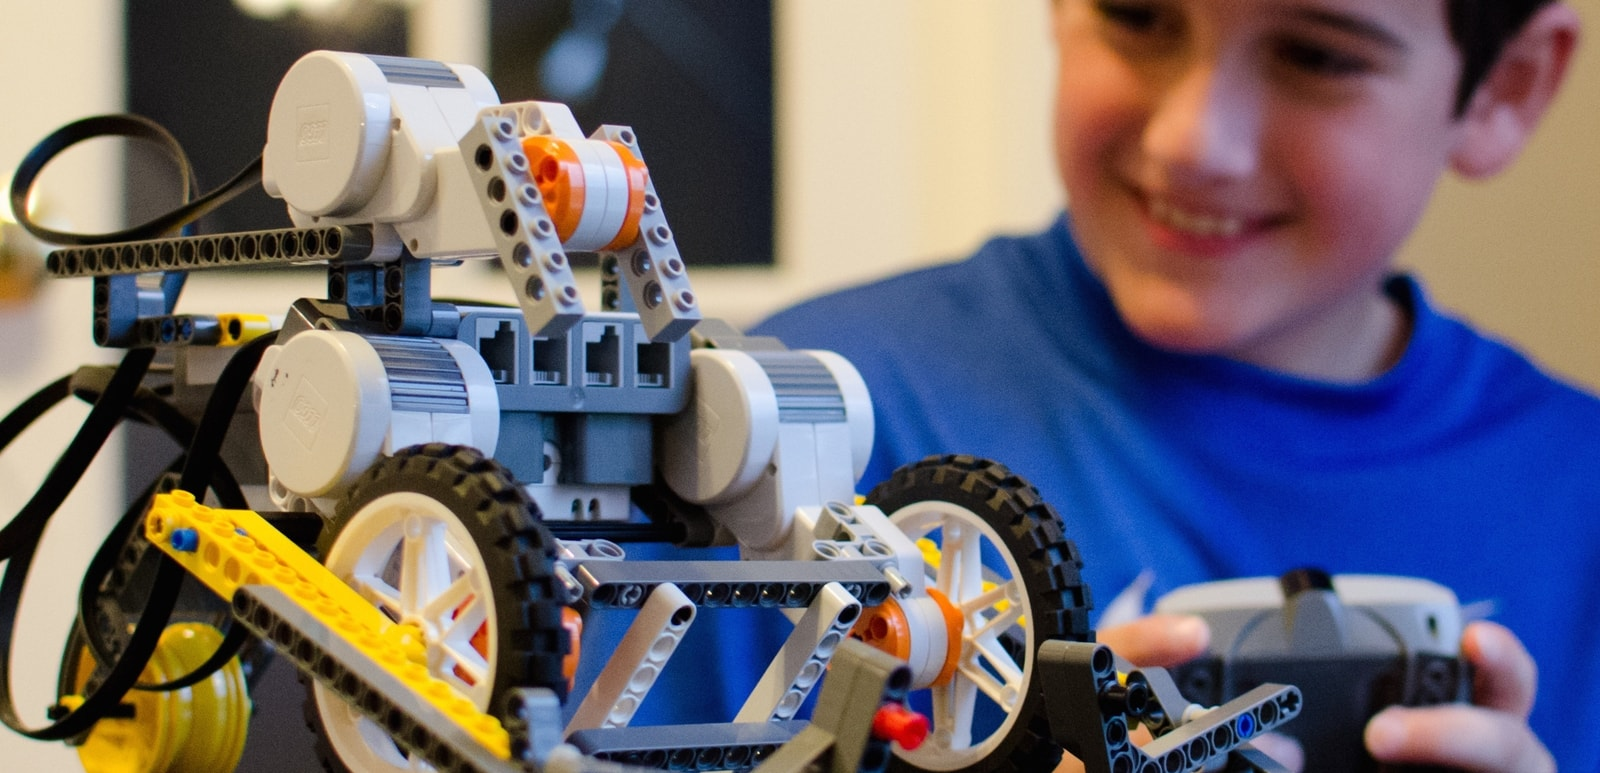 young boy laying with LEGO Robotics